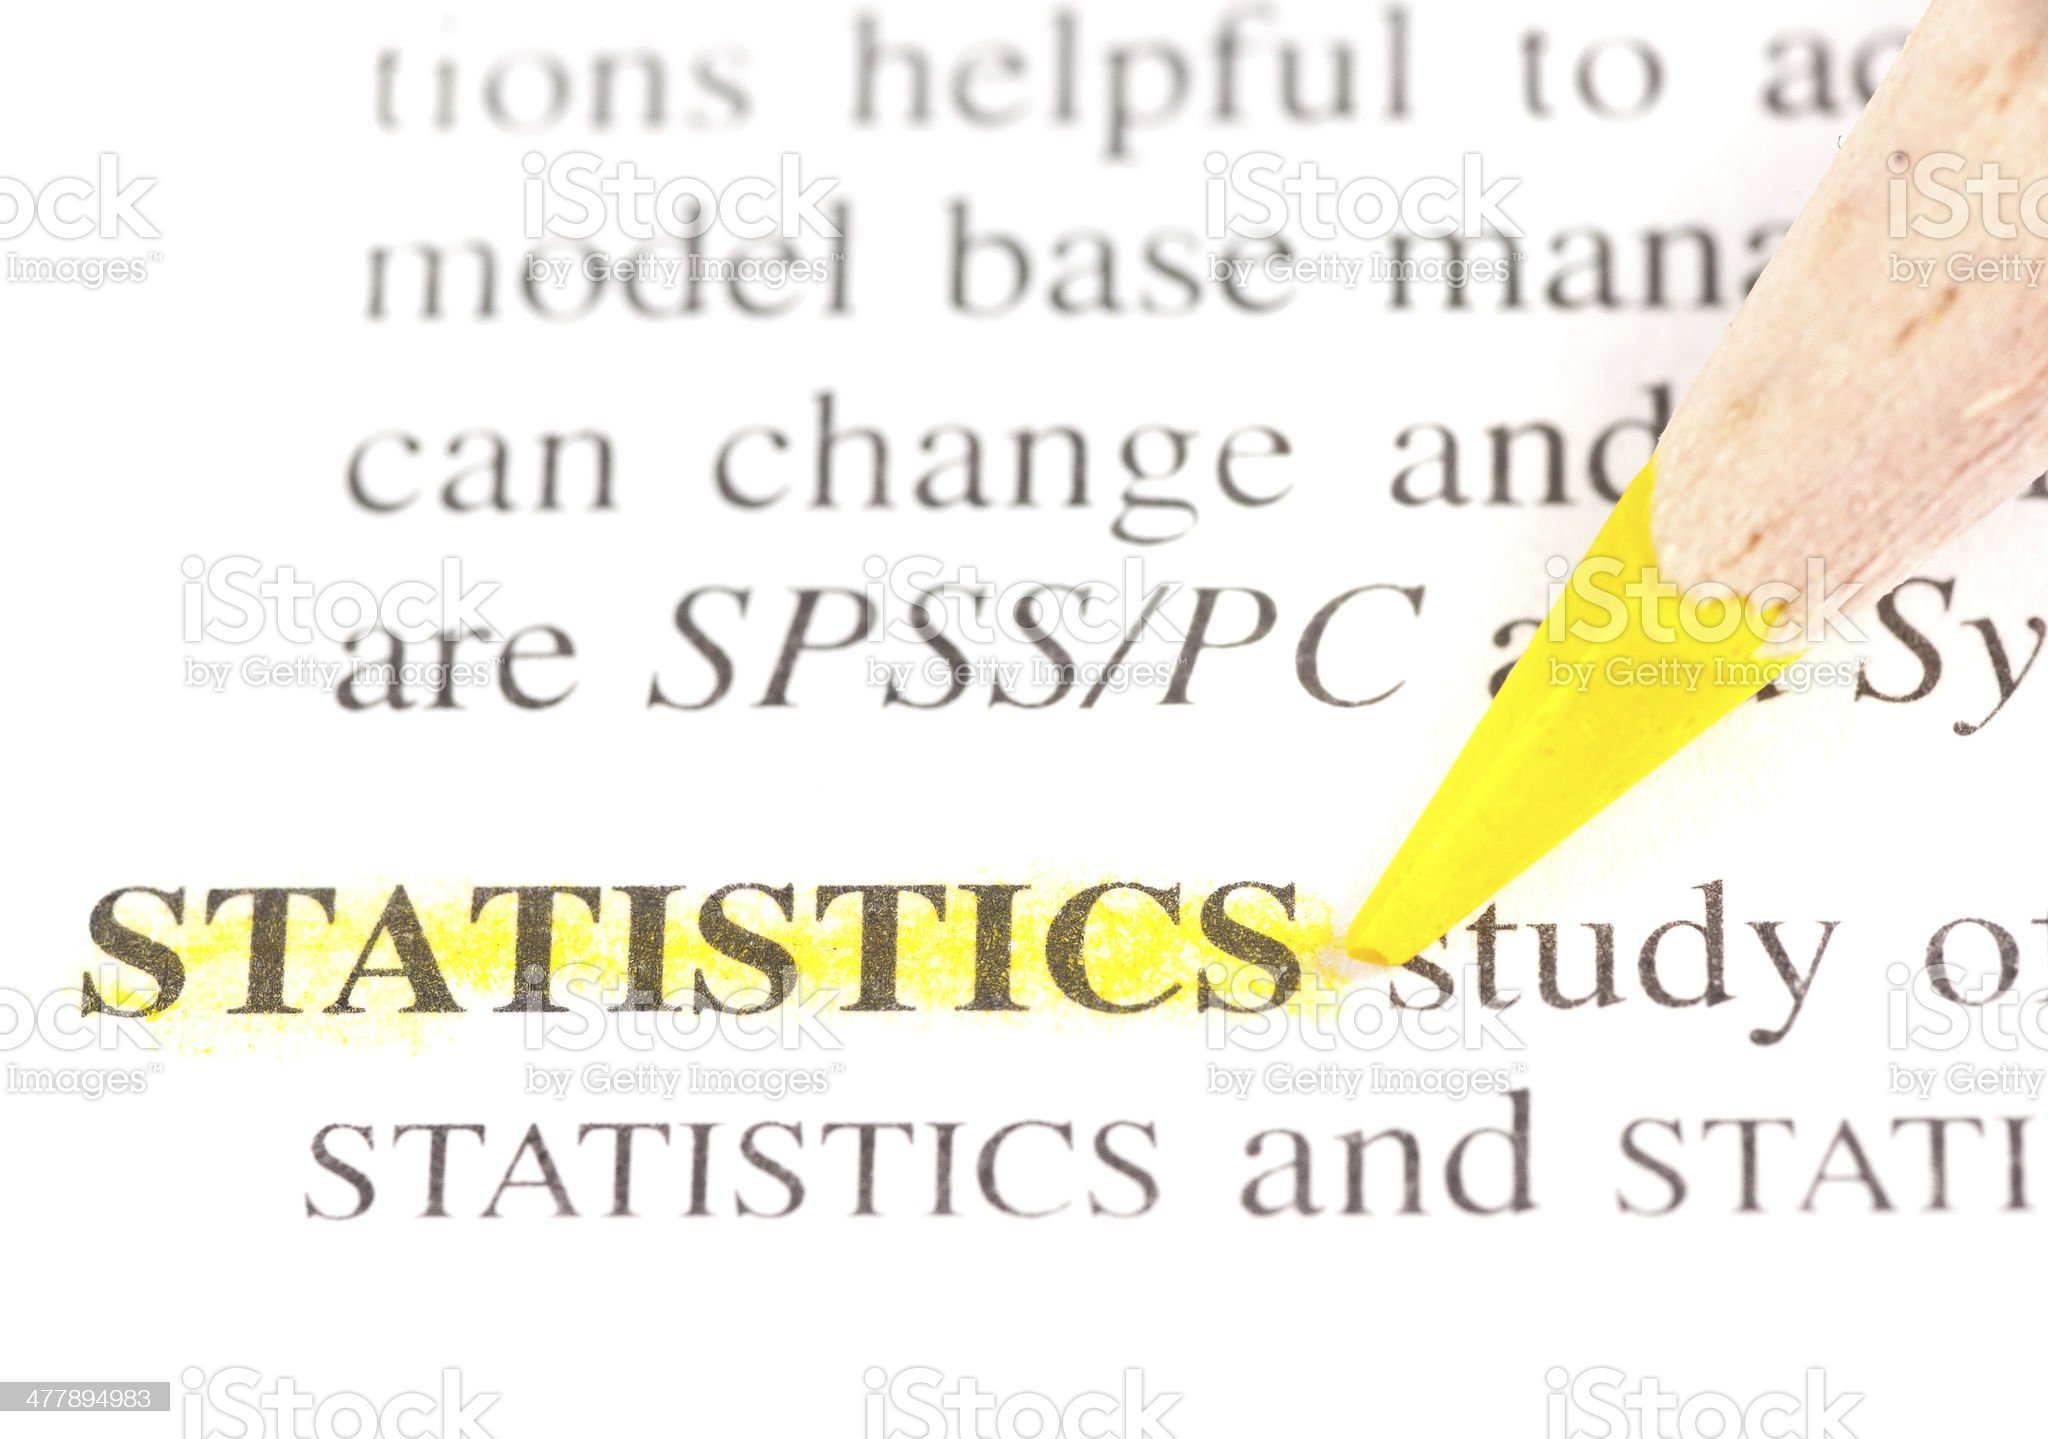 statistics definition highligted in dictionary royalty-free stock photo